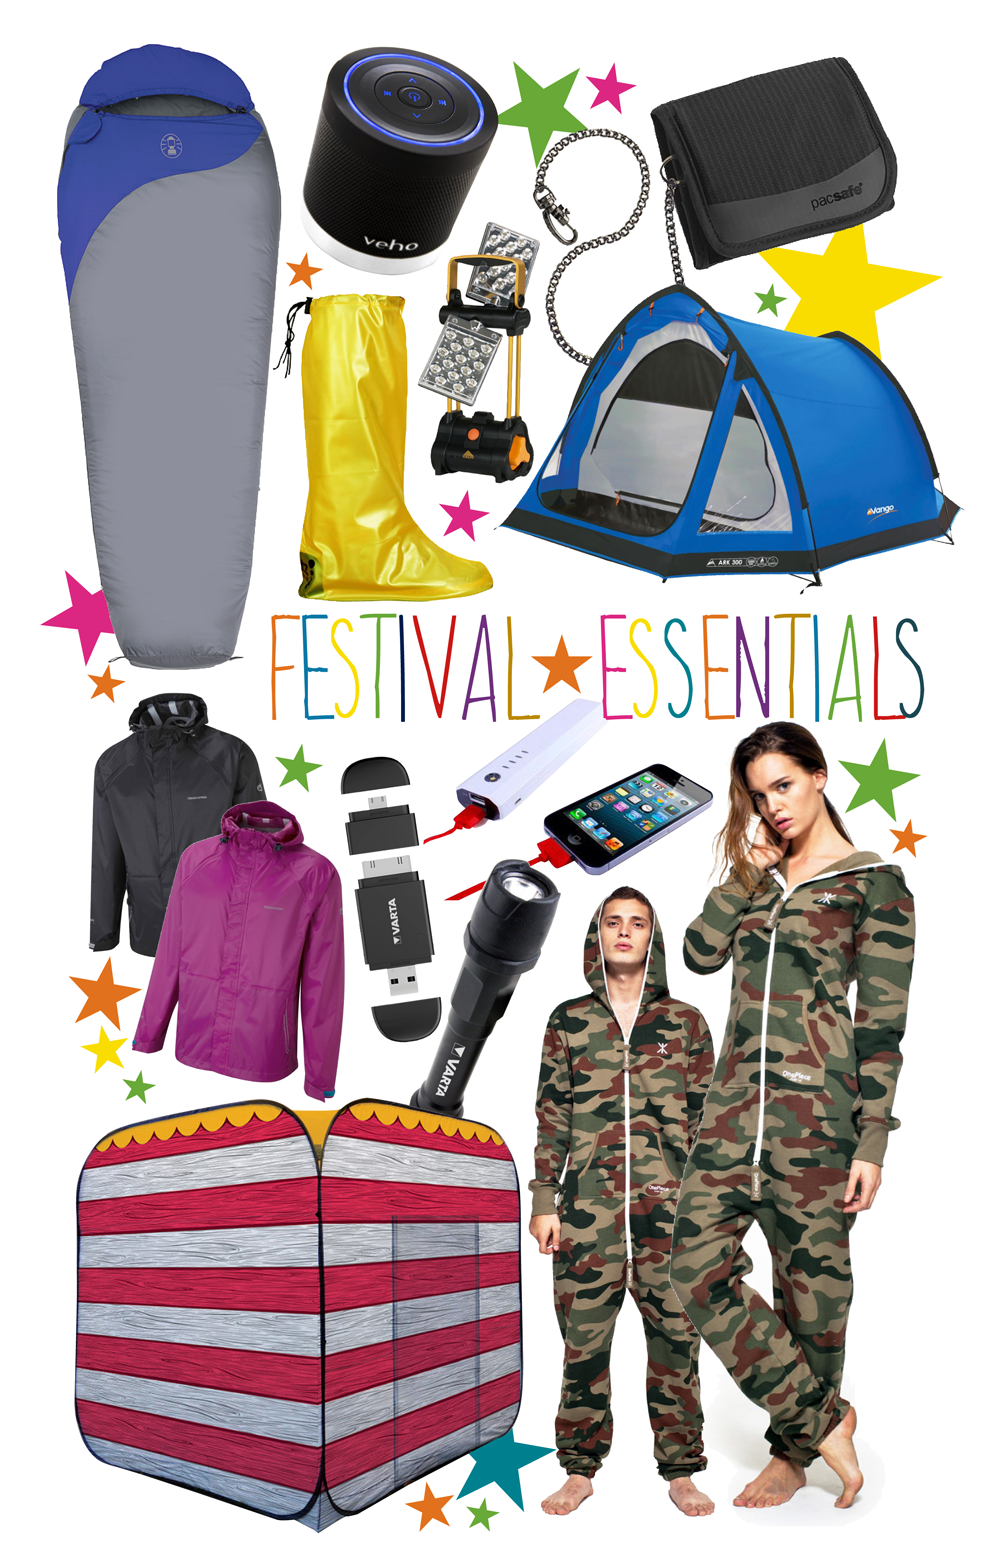 festivalessentials.png